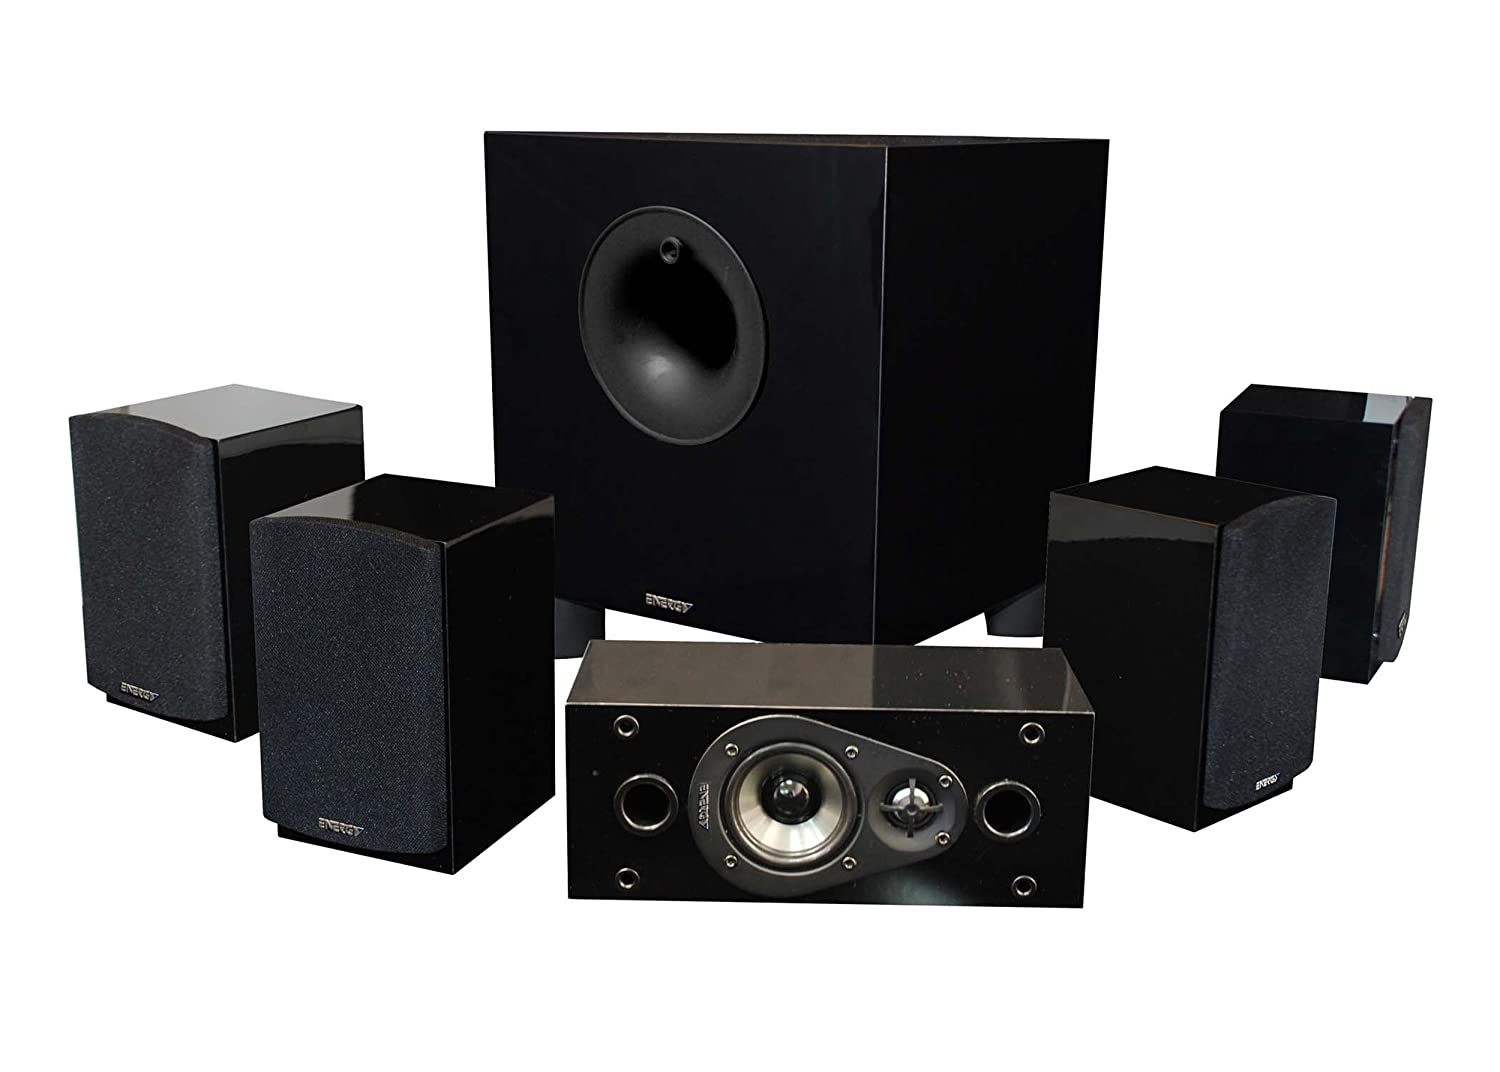 Energy 5.1 Take Classic Home Theater System (Set of Six, Black) $279.99